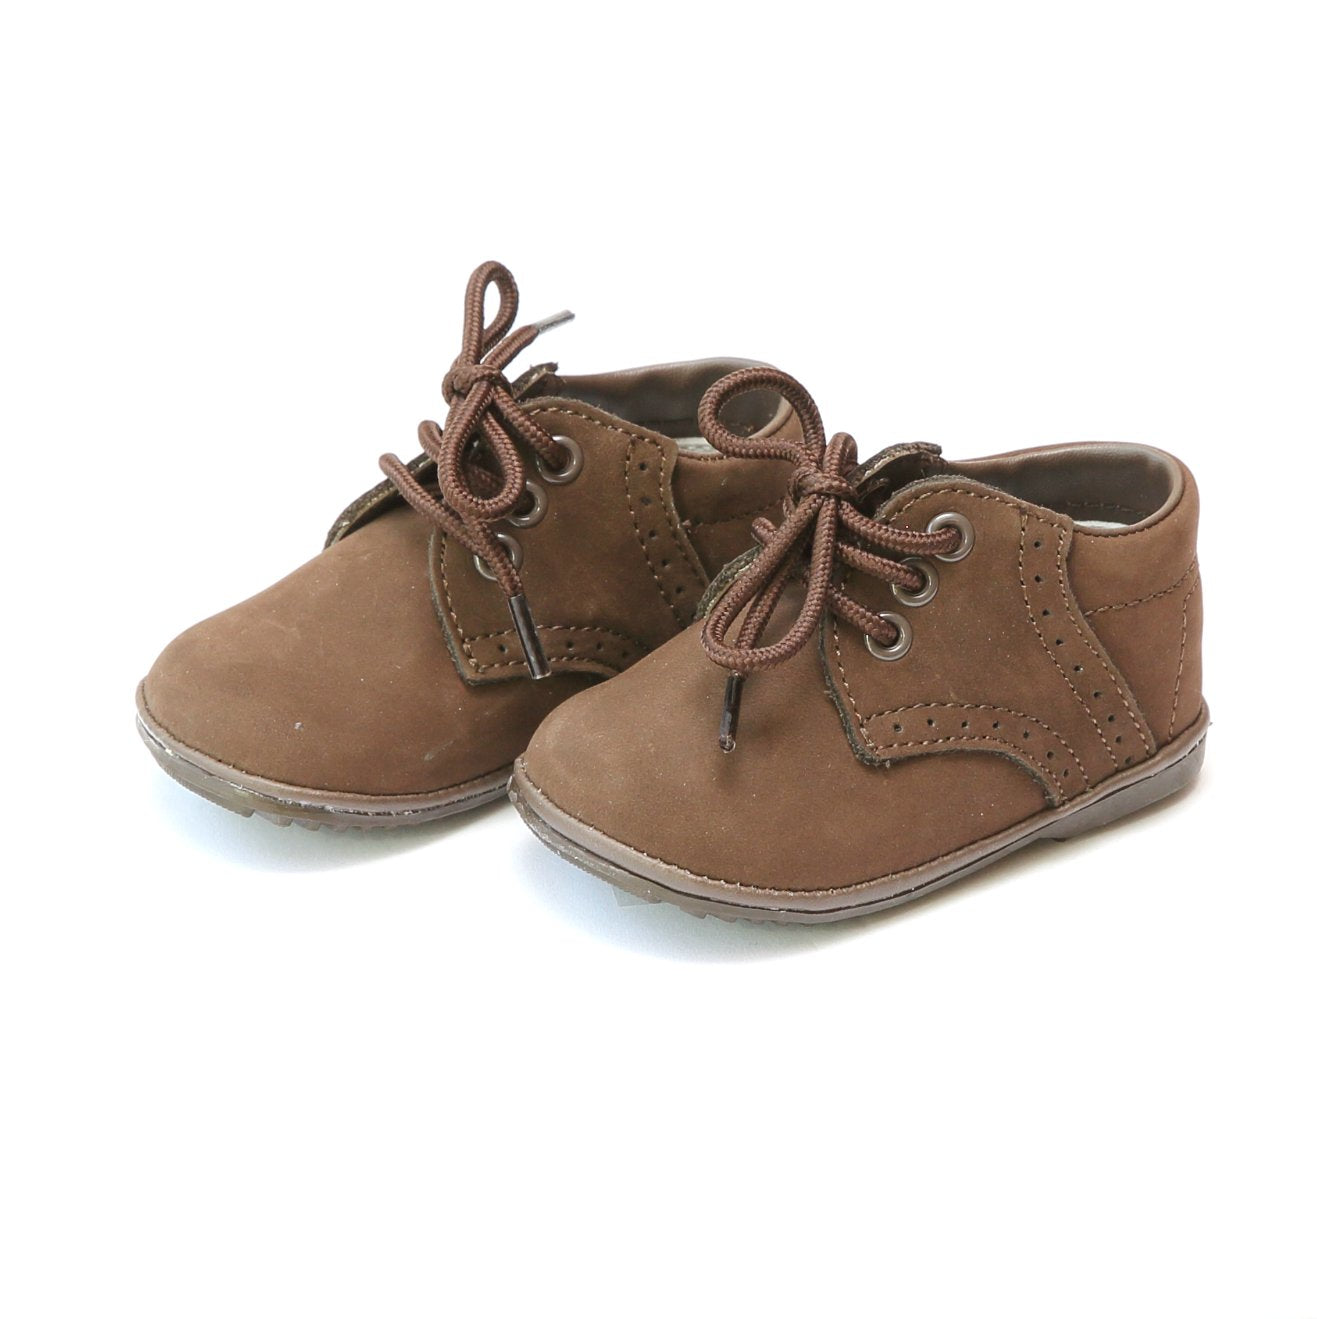 James Boy's Nubuck Brown Leather Lace Up Shoe